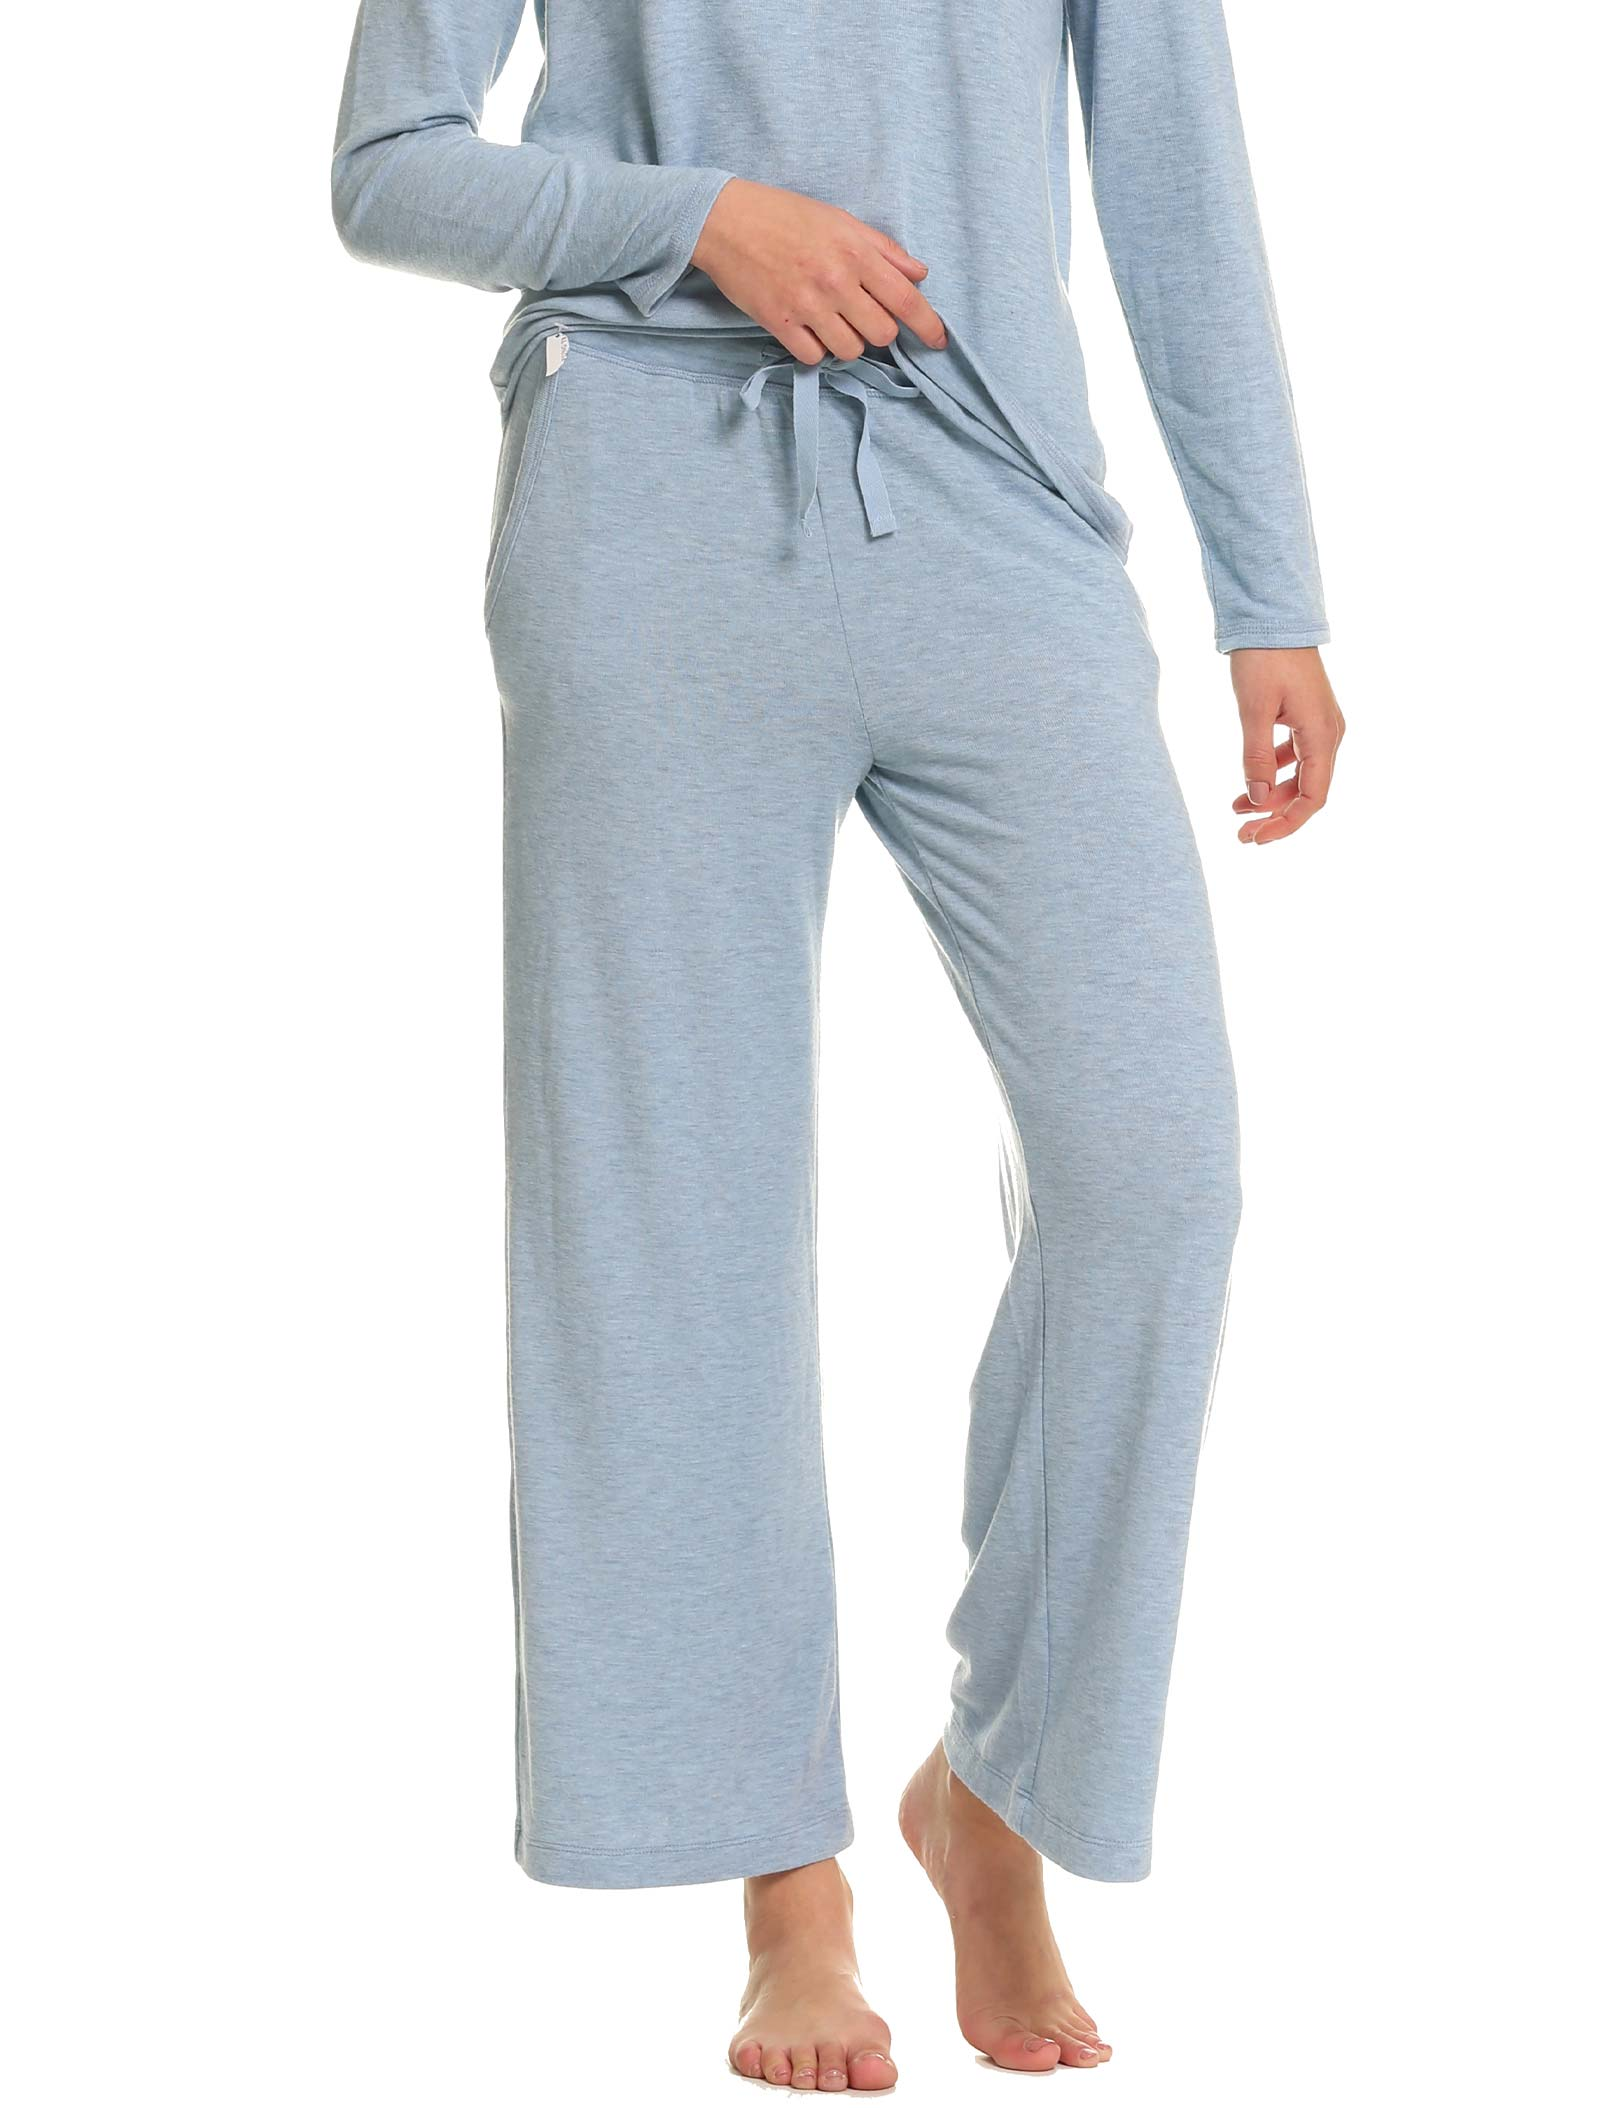 Feather Soft Wide Leg Pant in Powder Blue